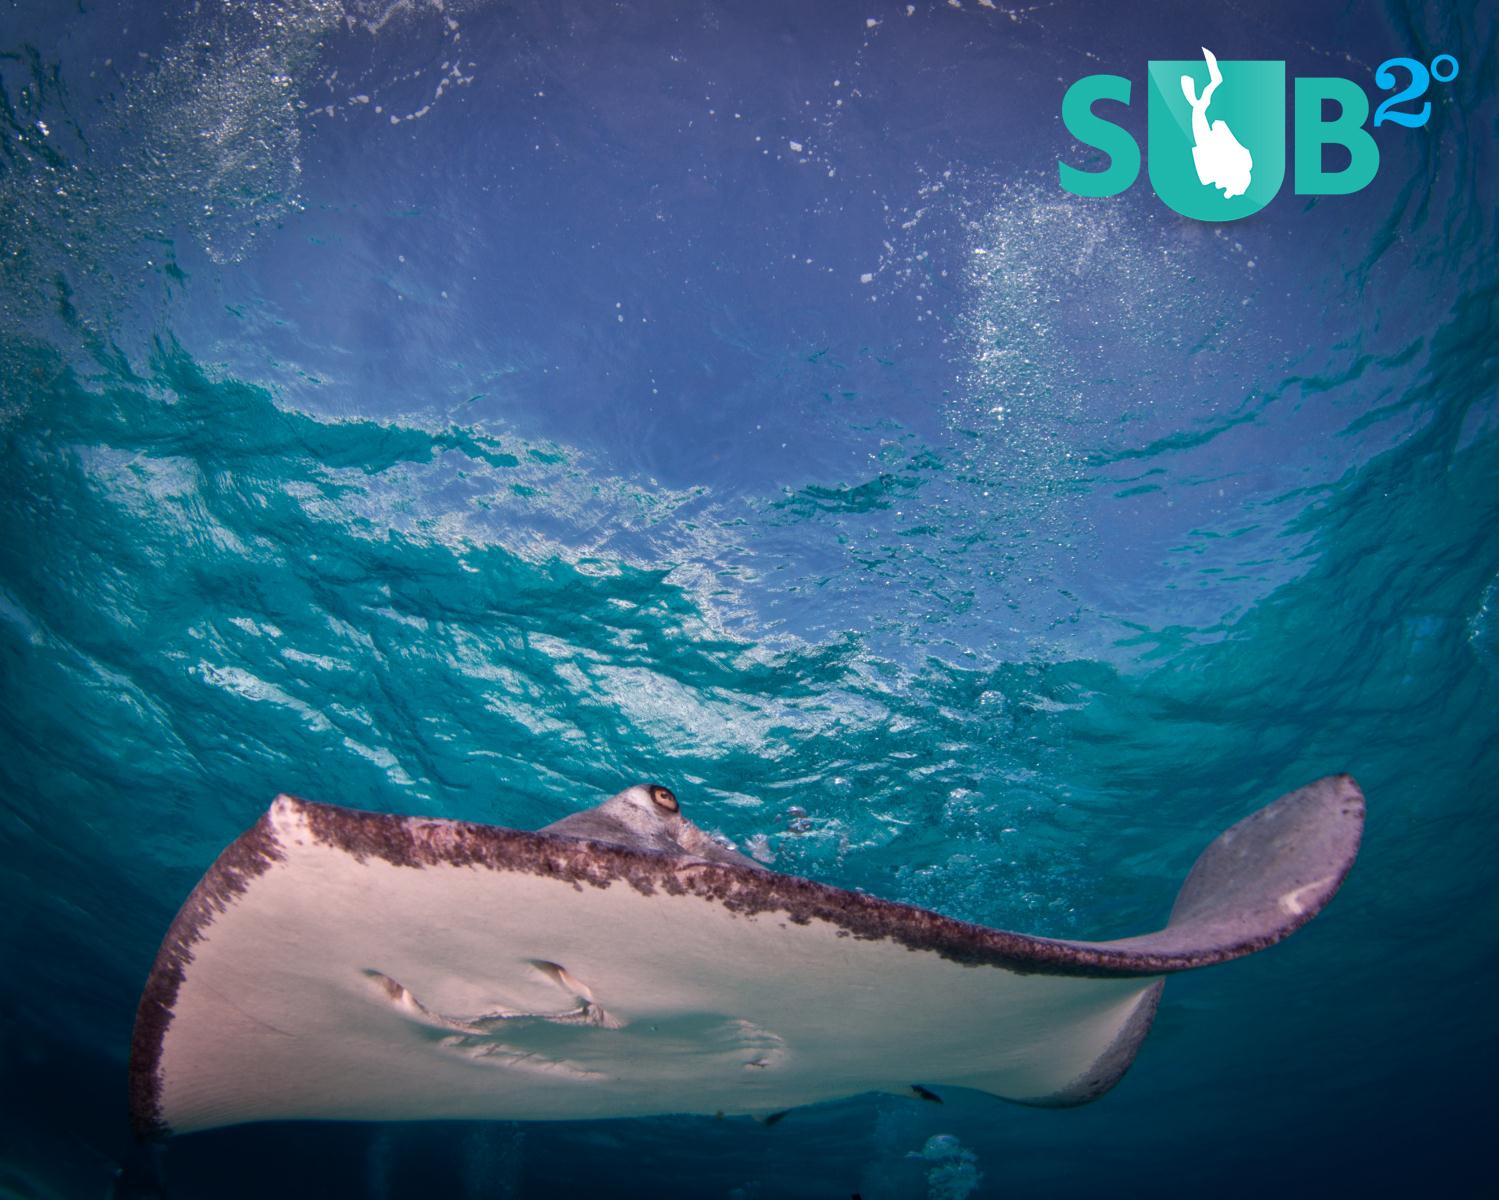 Stingrays are abundant in the shallow waters off Grand Cayman Island